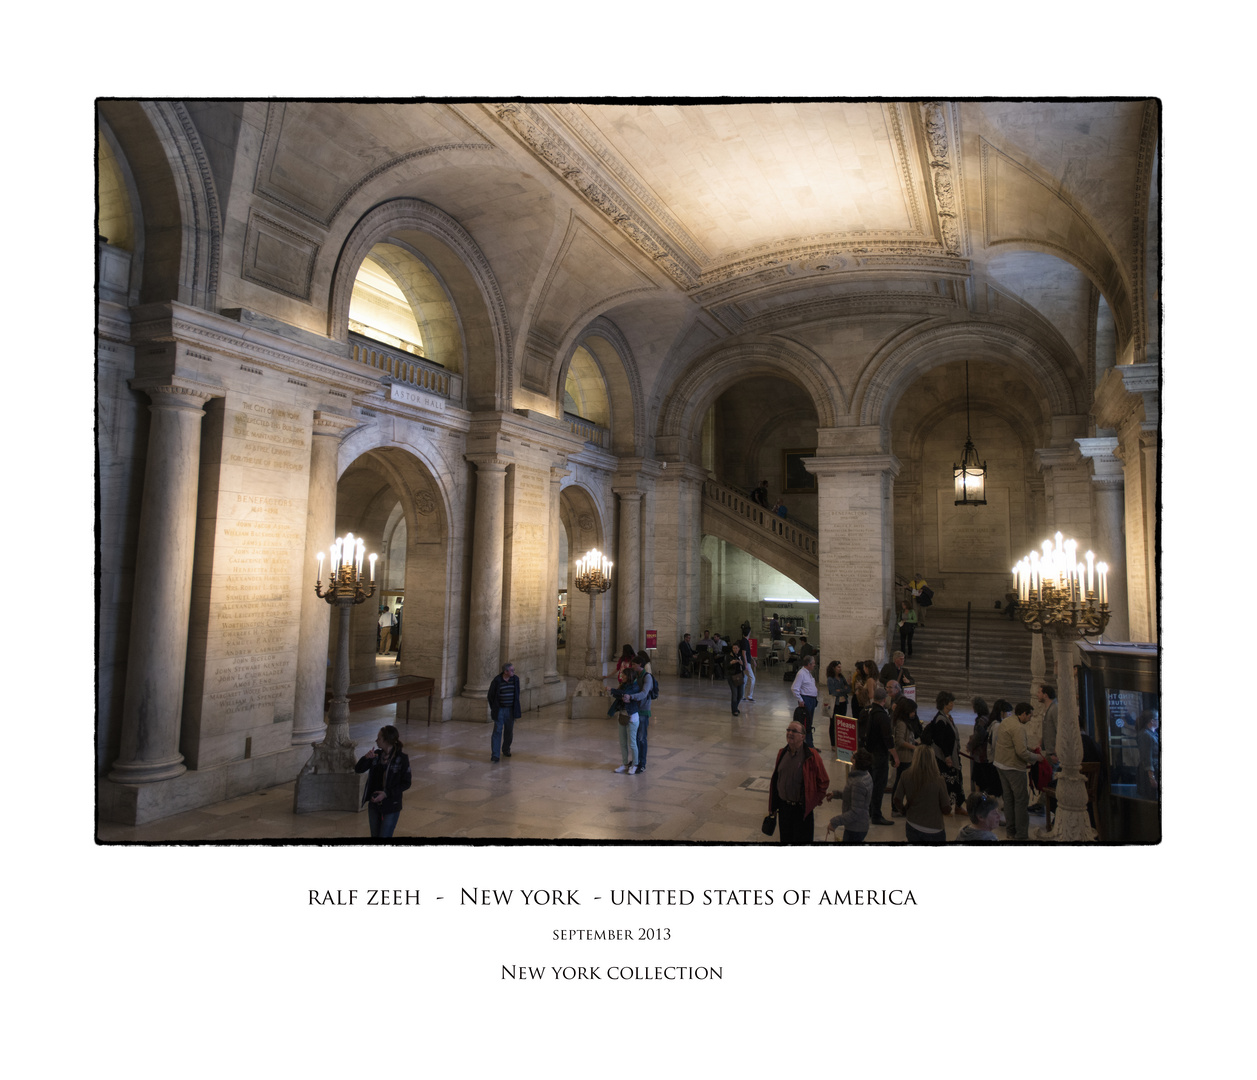 New York Public Library no.2